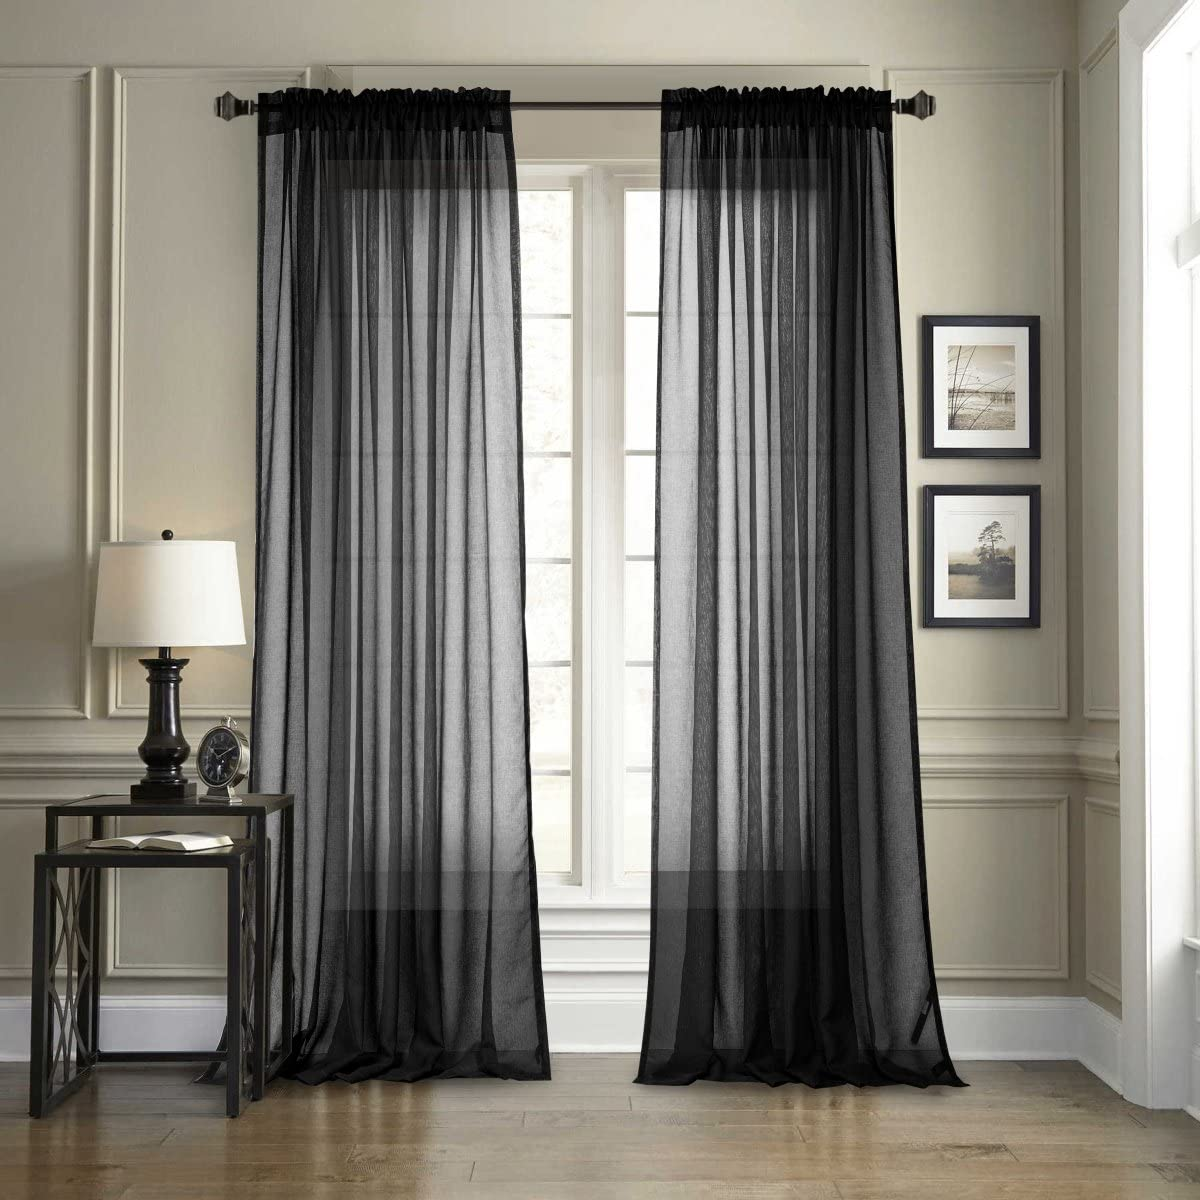 What Color Curtains Go With Tan Walls Decor Snob